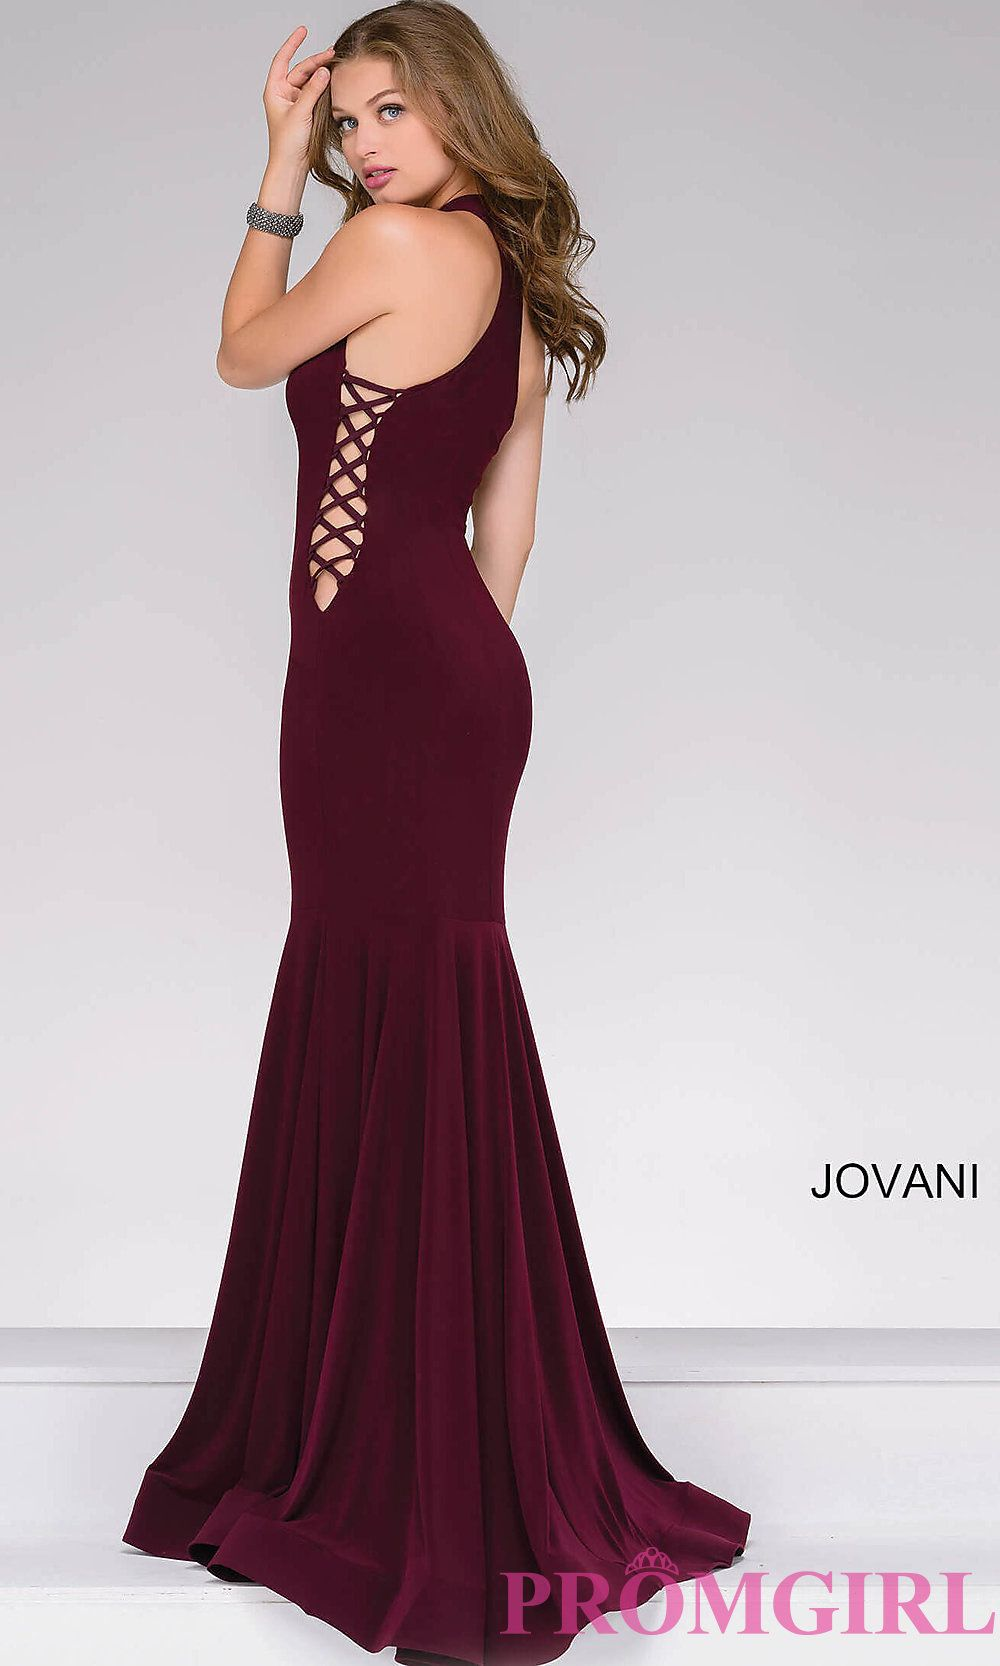 High-Neck Prom Dress with Lace Up Sides | Prom 2017 Top Picks ...